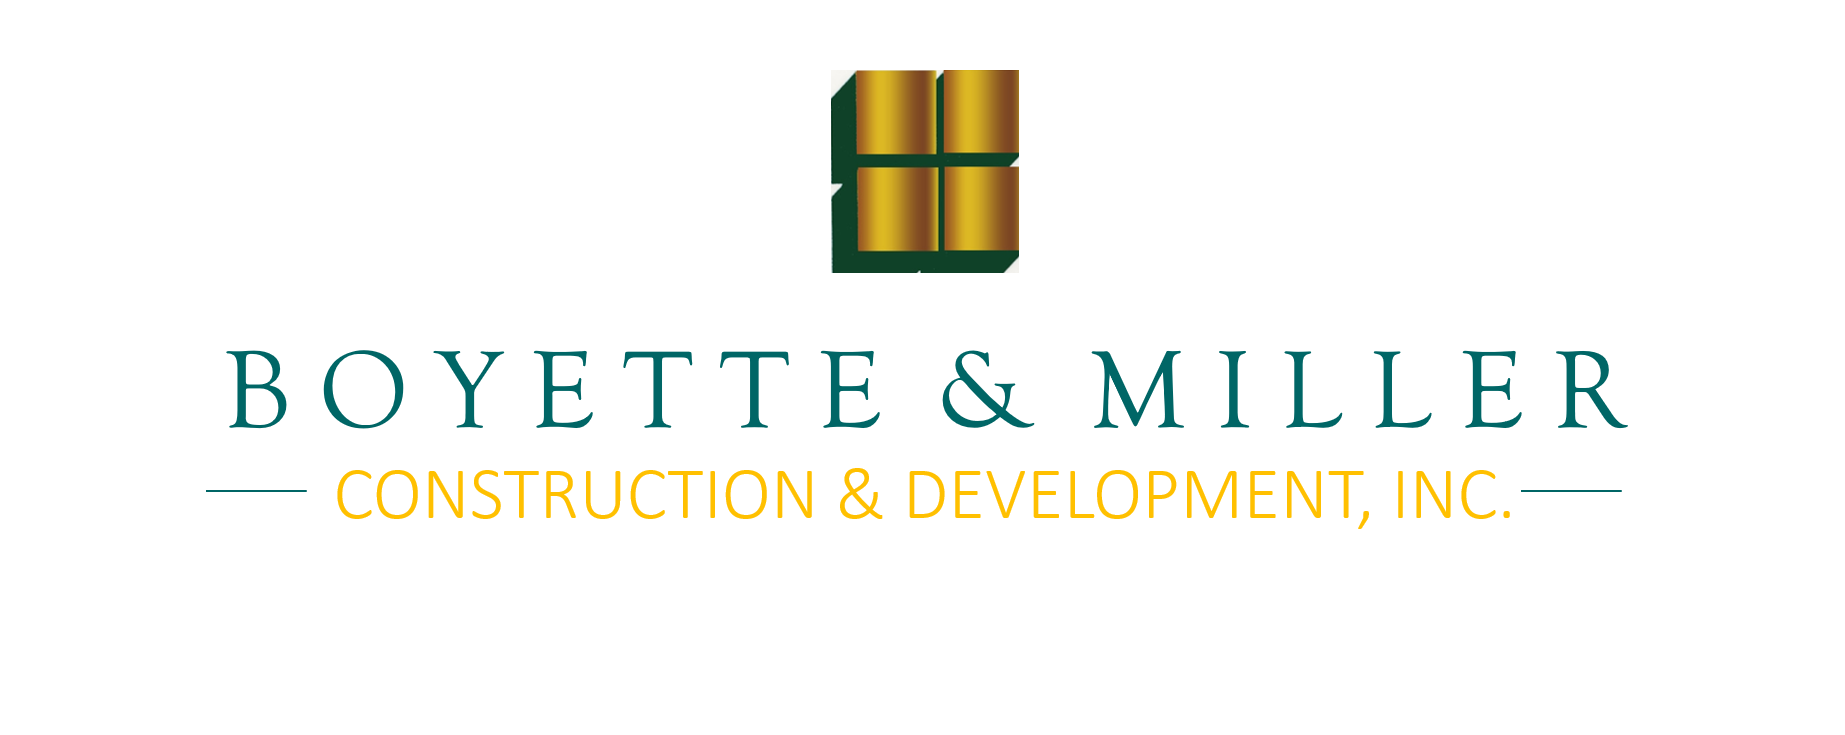 Boyette-Miller-Construction-Development